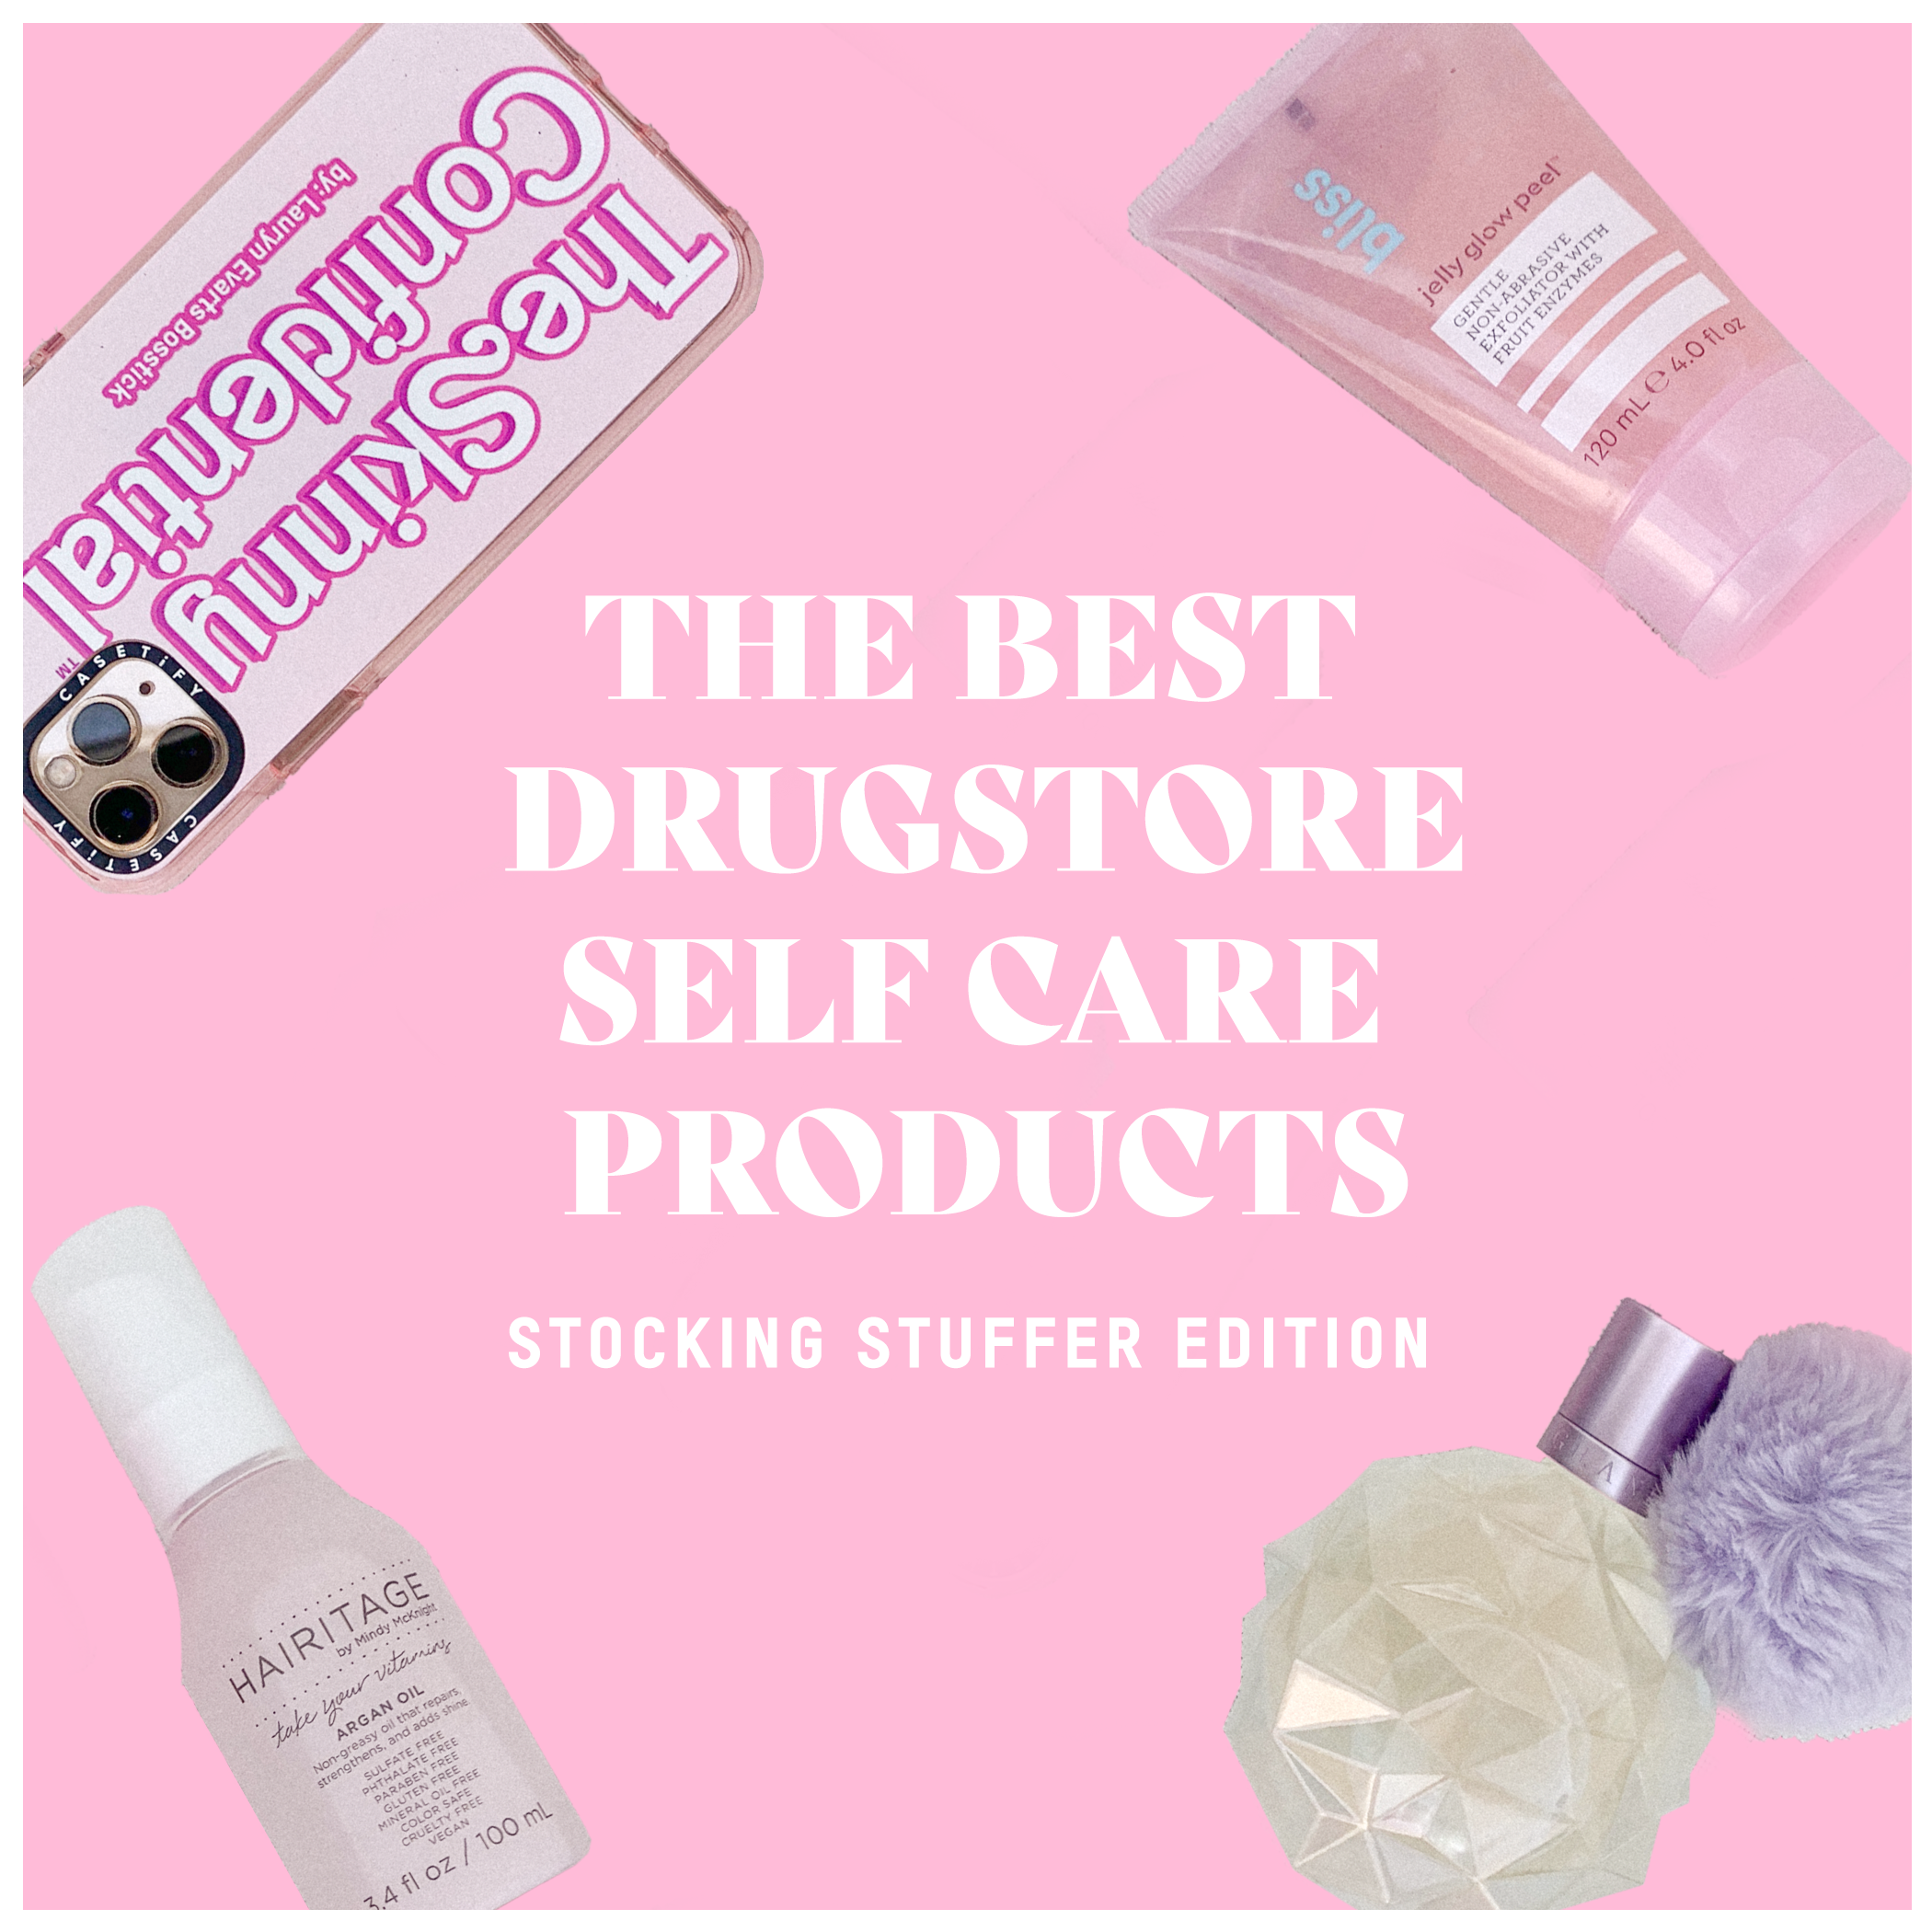 The Best Drugstore Self Care Products: Stocking Stuffer Edition